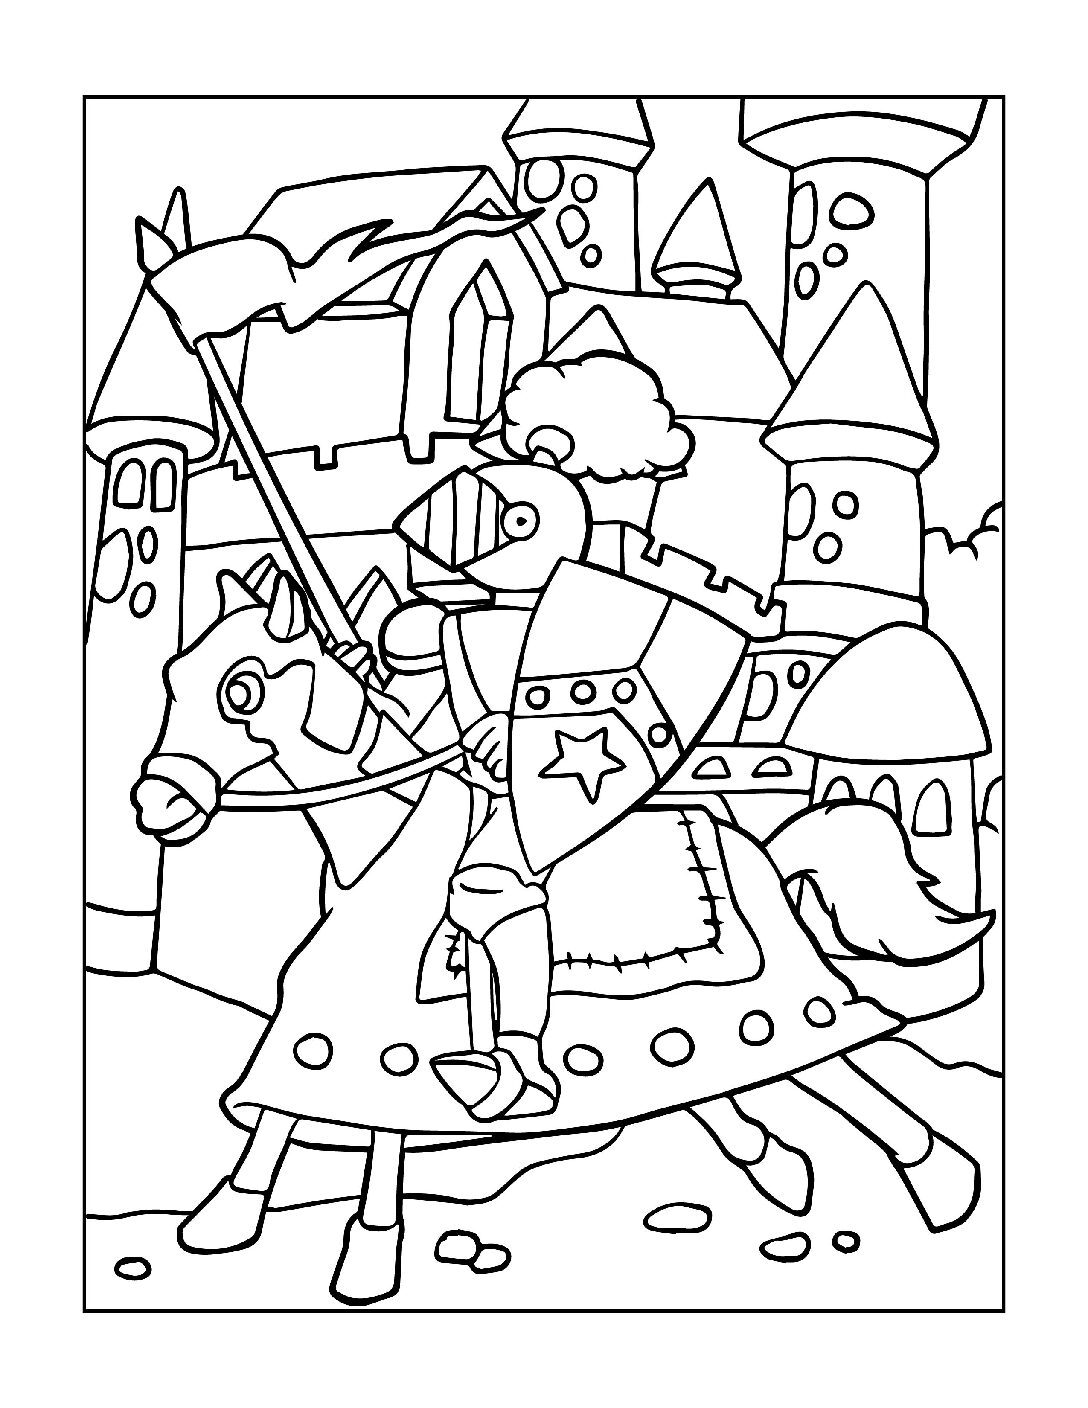 Coloring-Pages-Pirates-and-Knights-for-Boys-10-01-pdf Free Printable Pirates &  Knights Colouring Pages